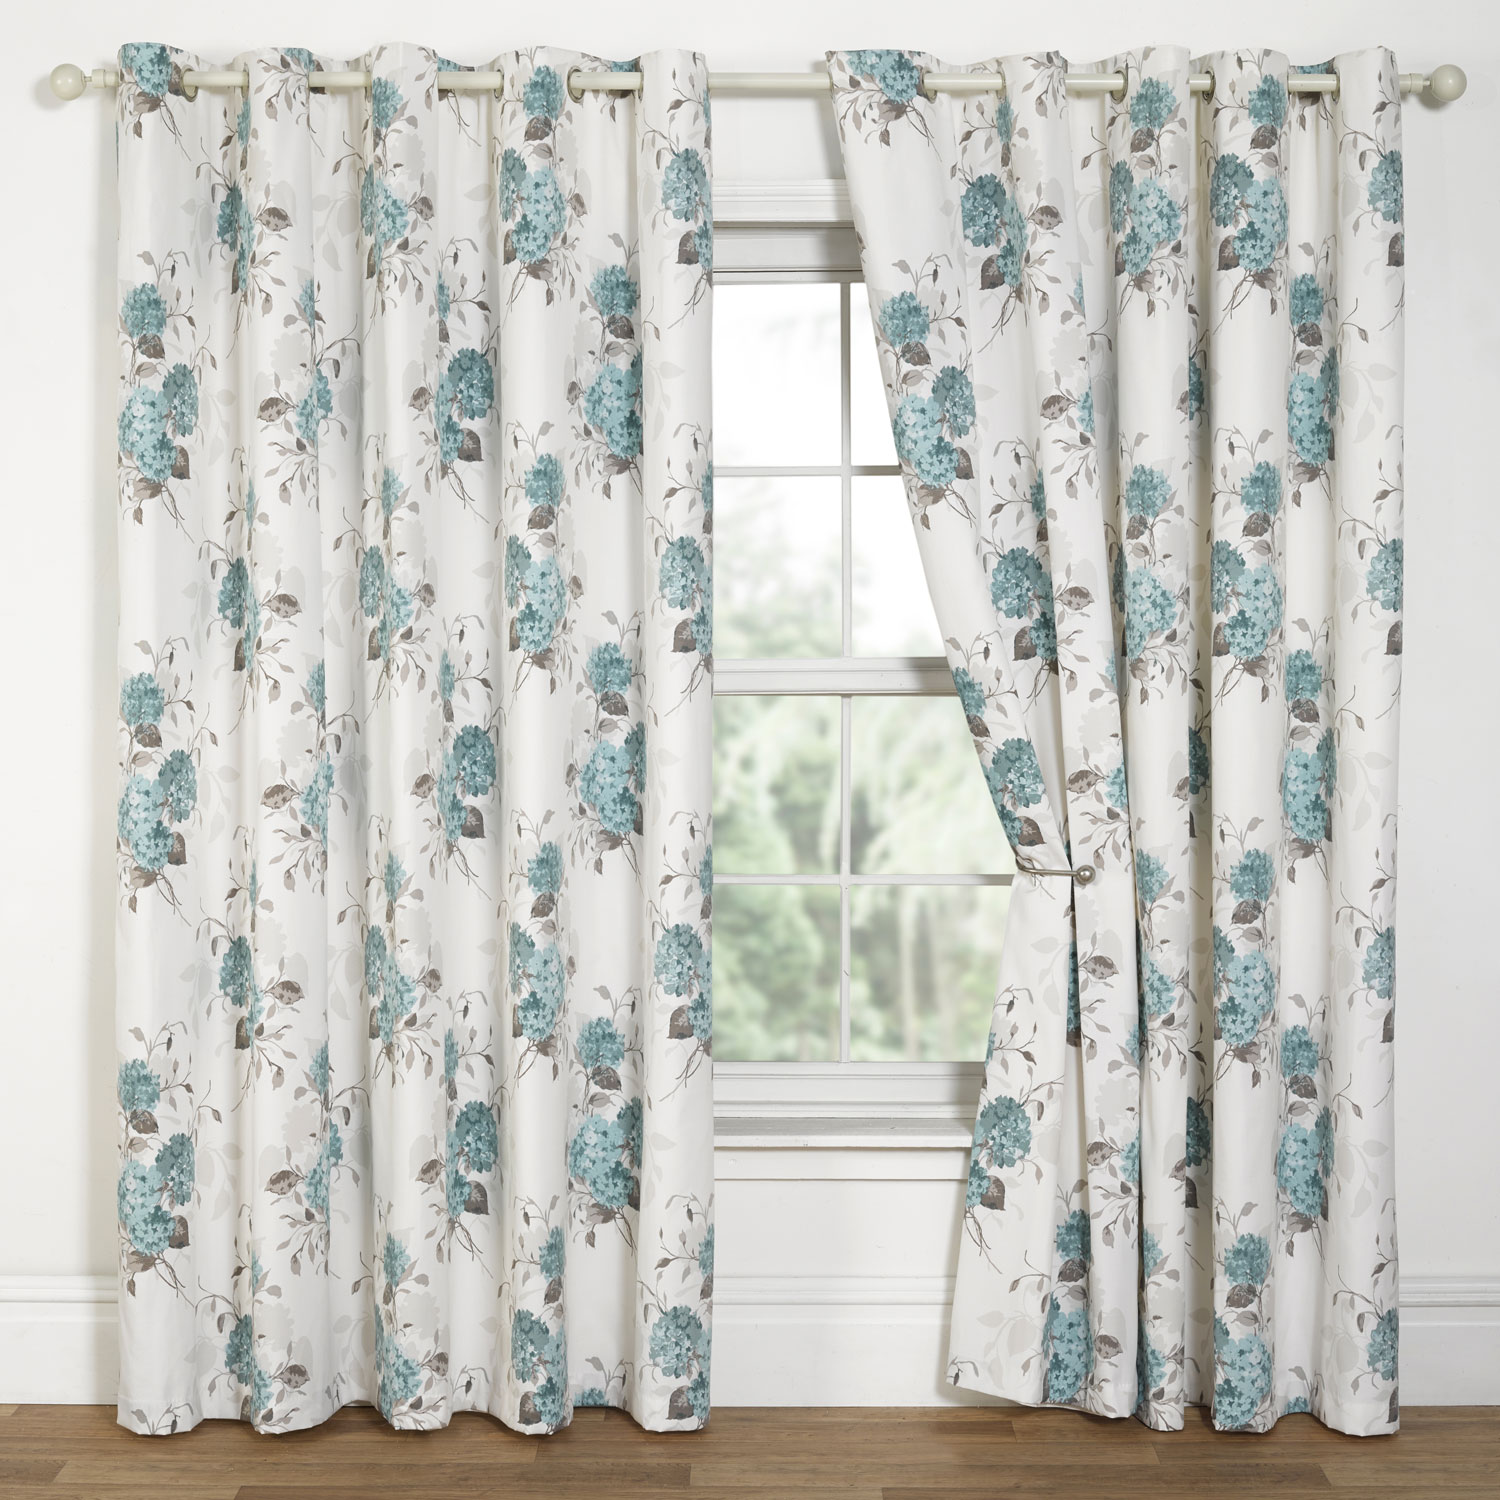 Moden 3D Blackout Curtains Beautiful Lifelike Refined HD